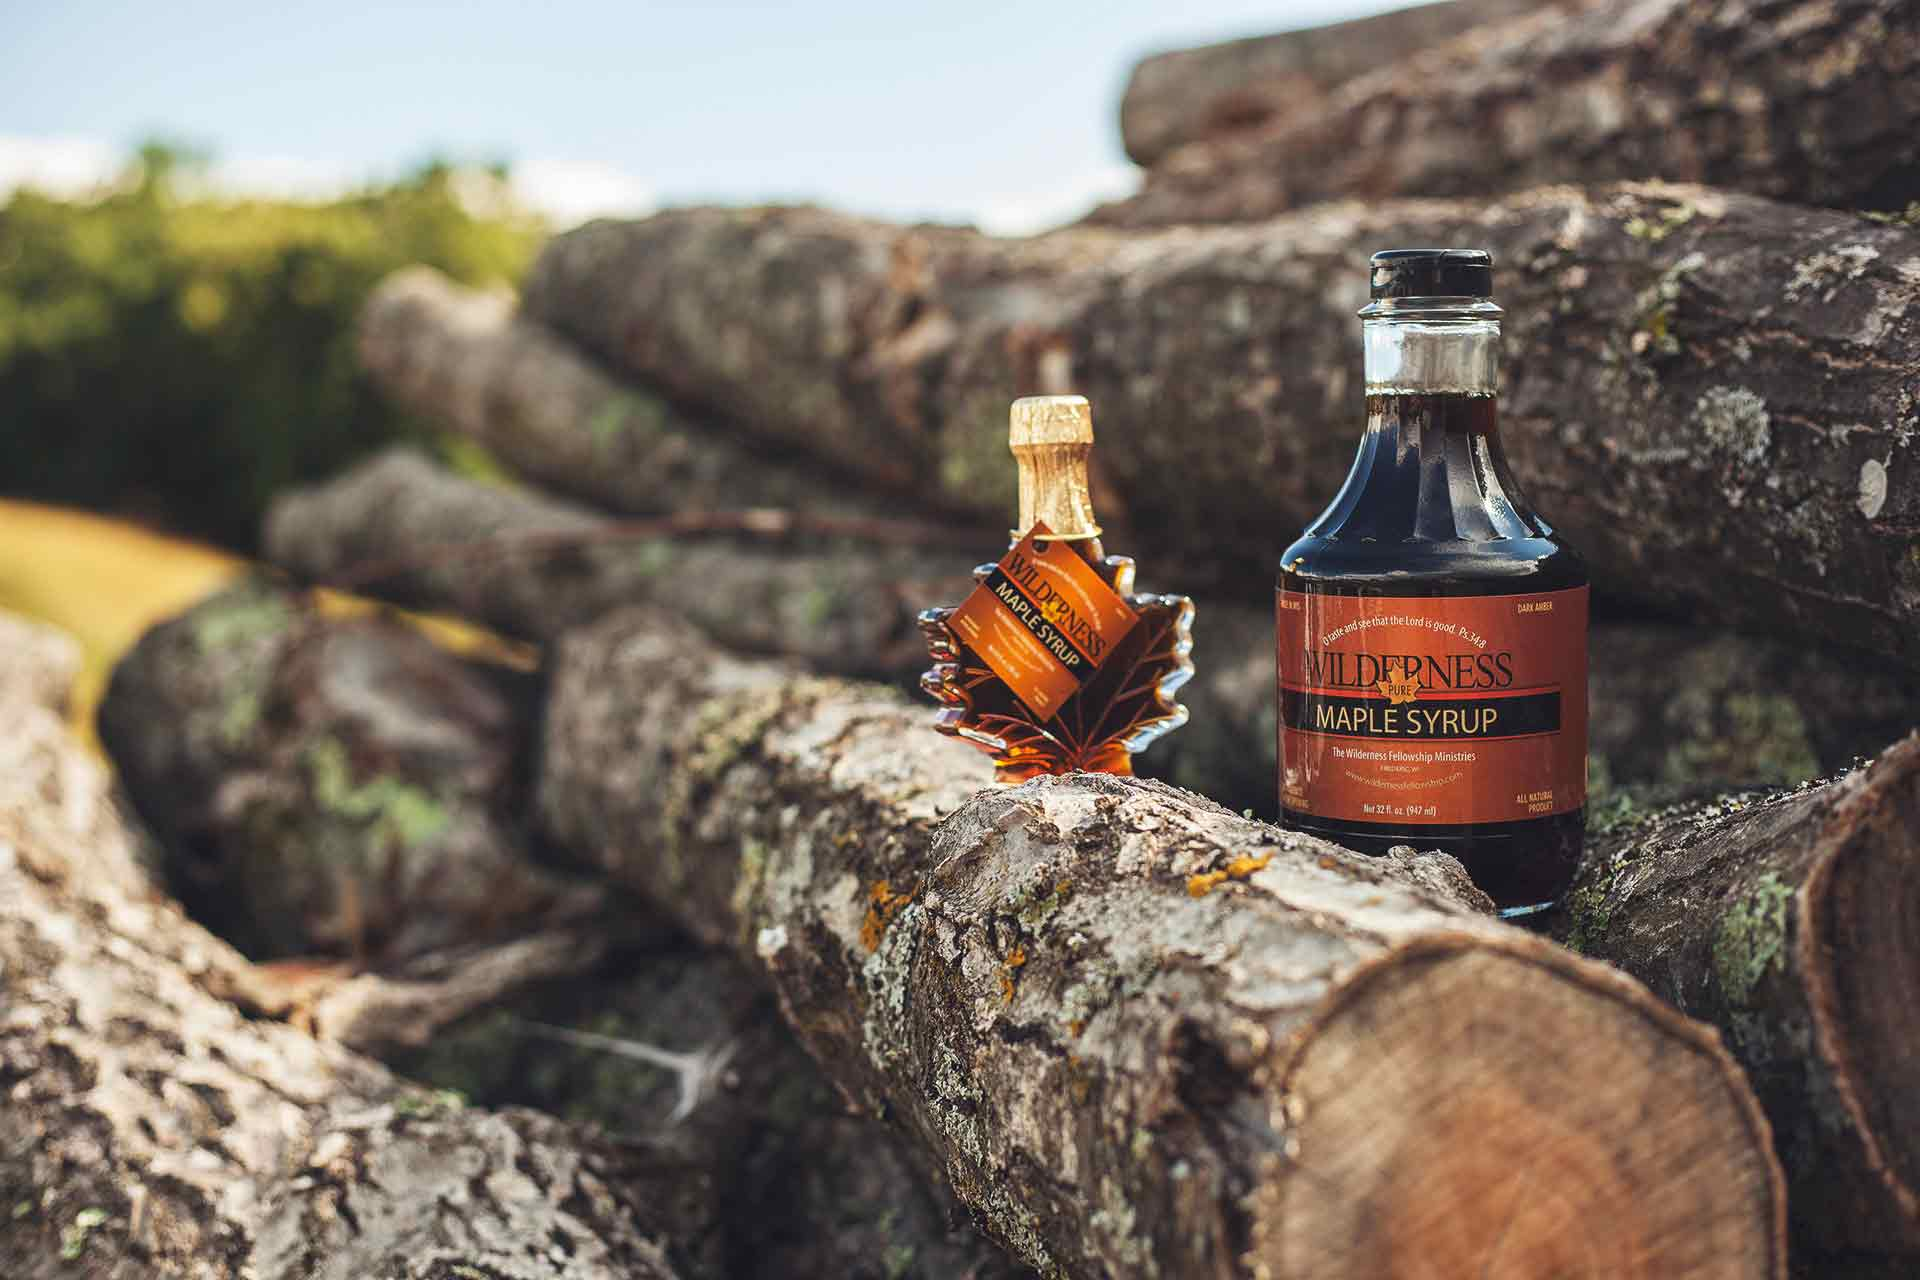 Wilderness Maple Syrup